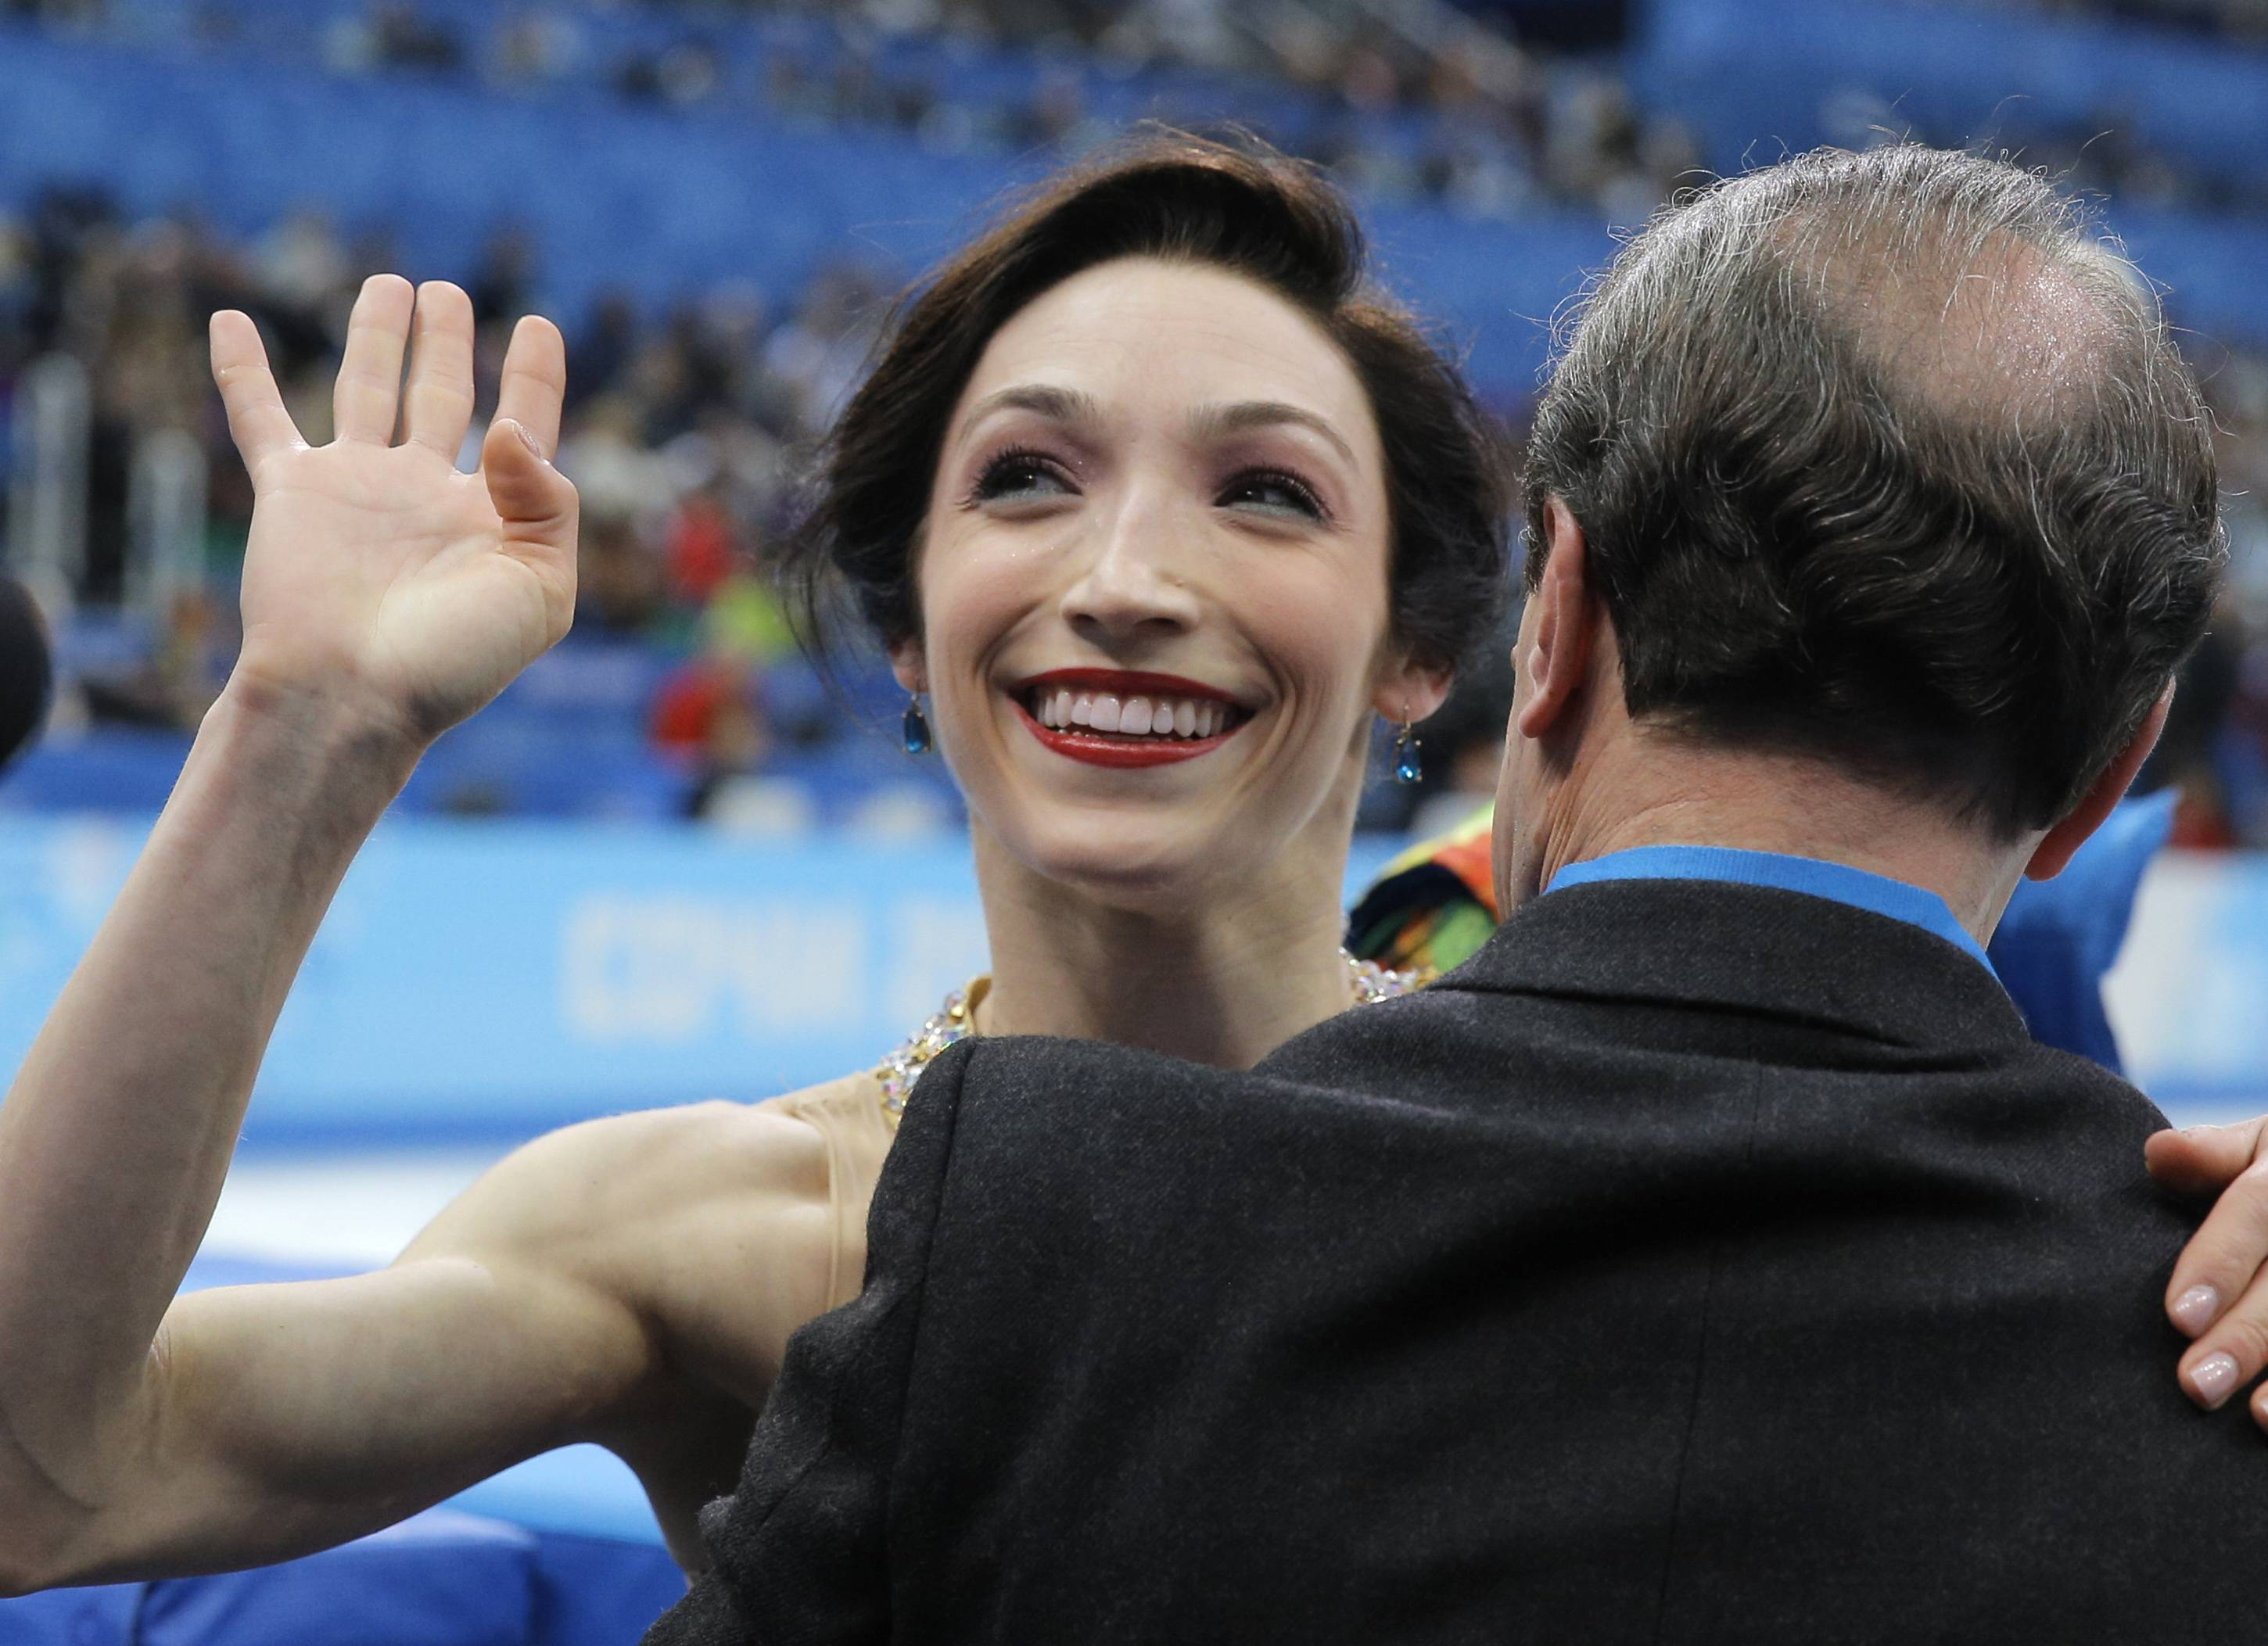 Meryl Davis waves to spectators after she and Charlie White of the United States competed Monday in the ice dance free dance figure skating finals at the Iceberg Skating Palace during the 2014 Winter Olympics in Sochi, Russia.